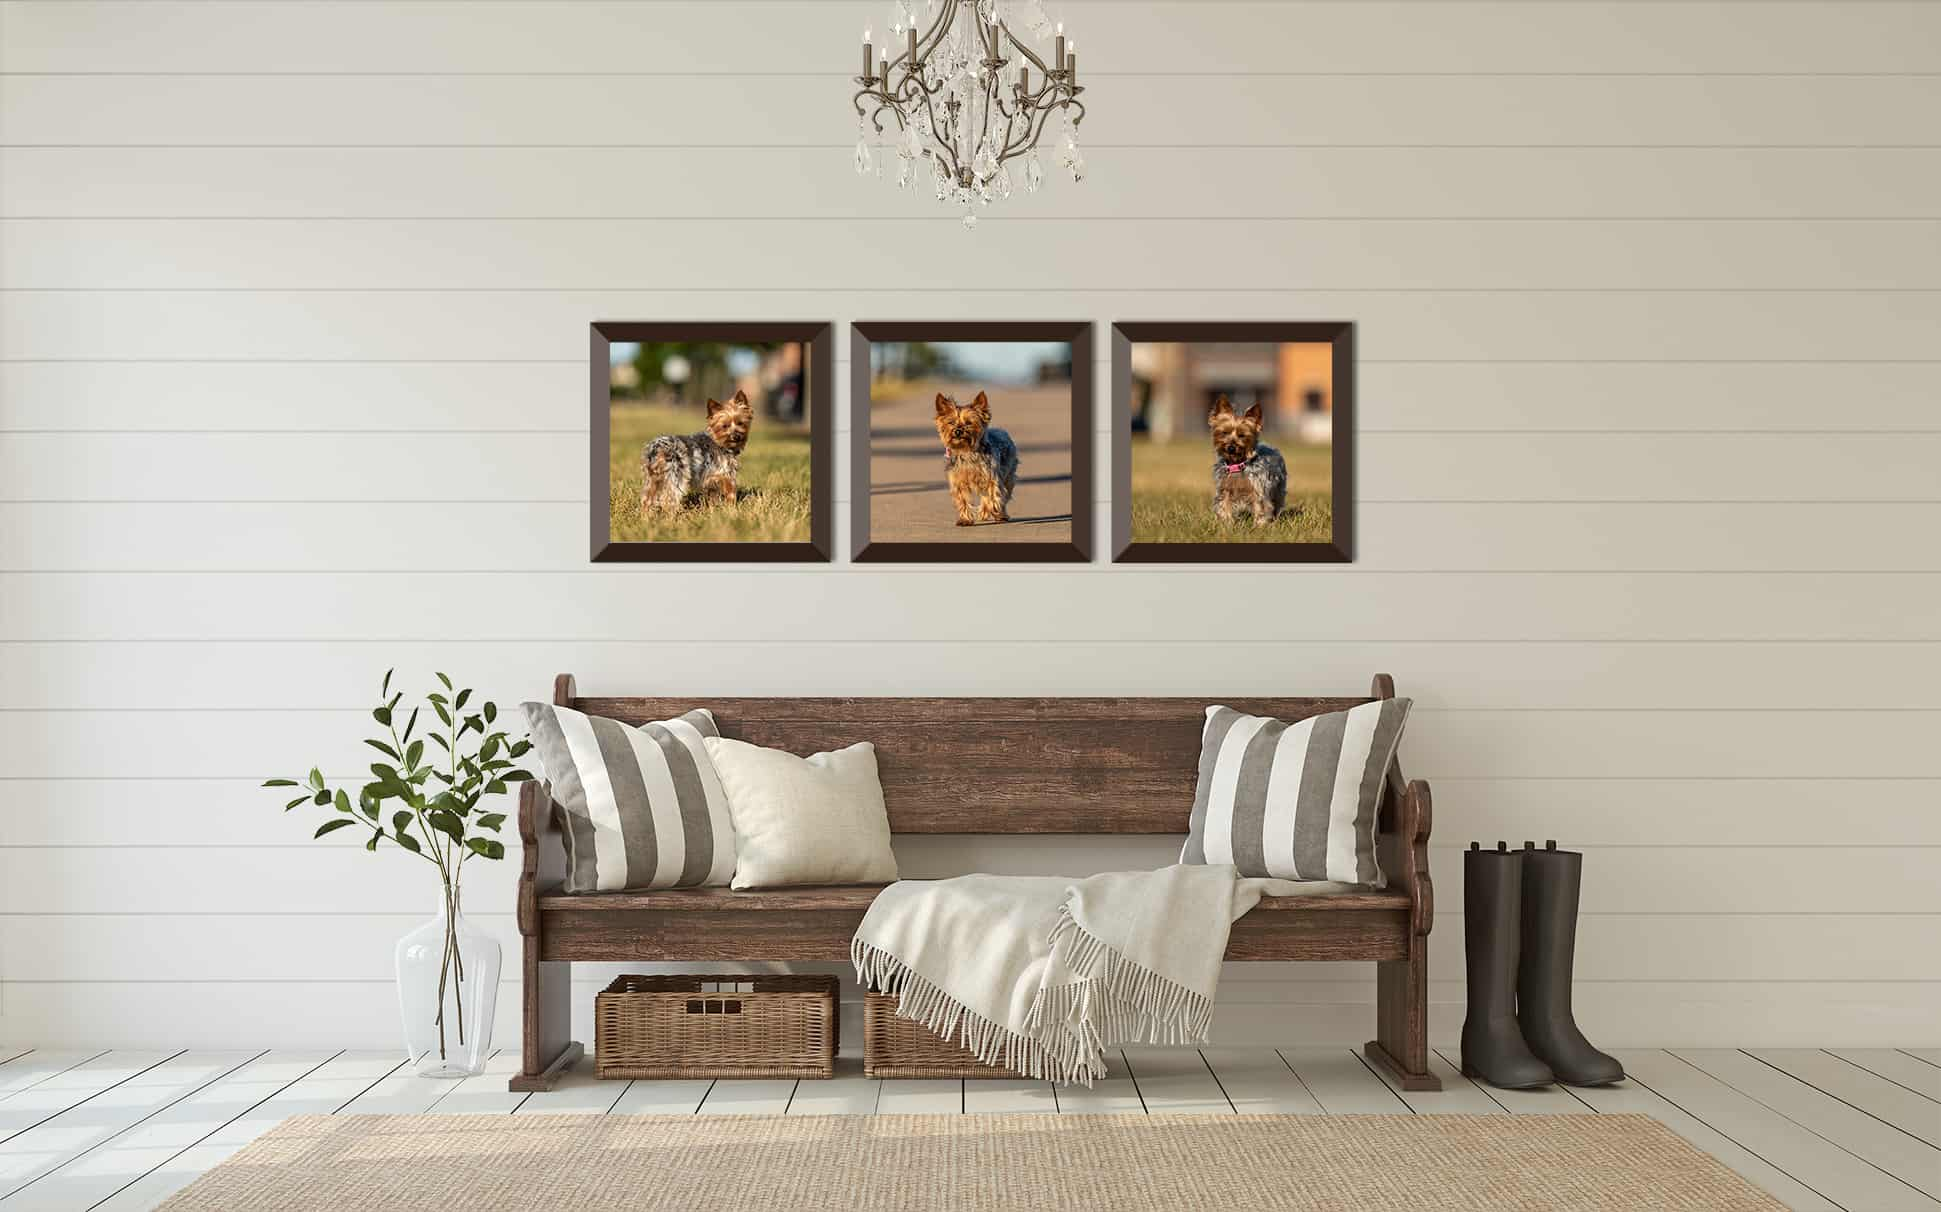 Three Framed Prints of a Dog in a Home Entryway